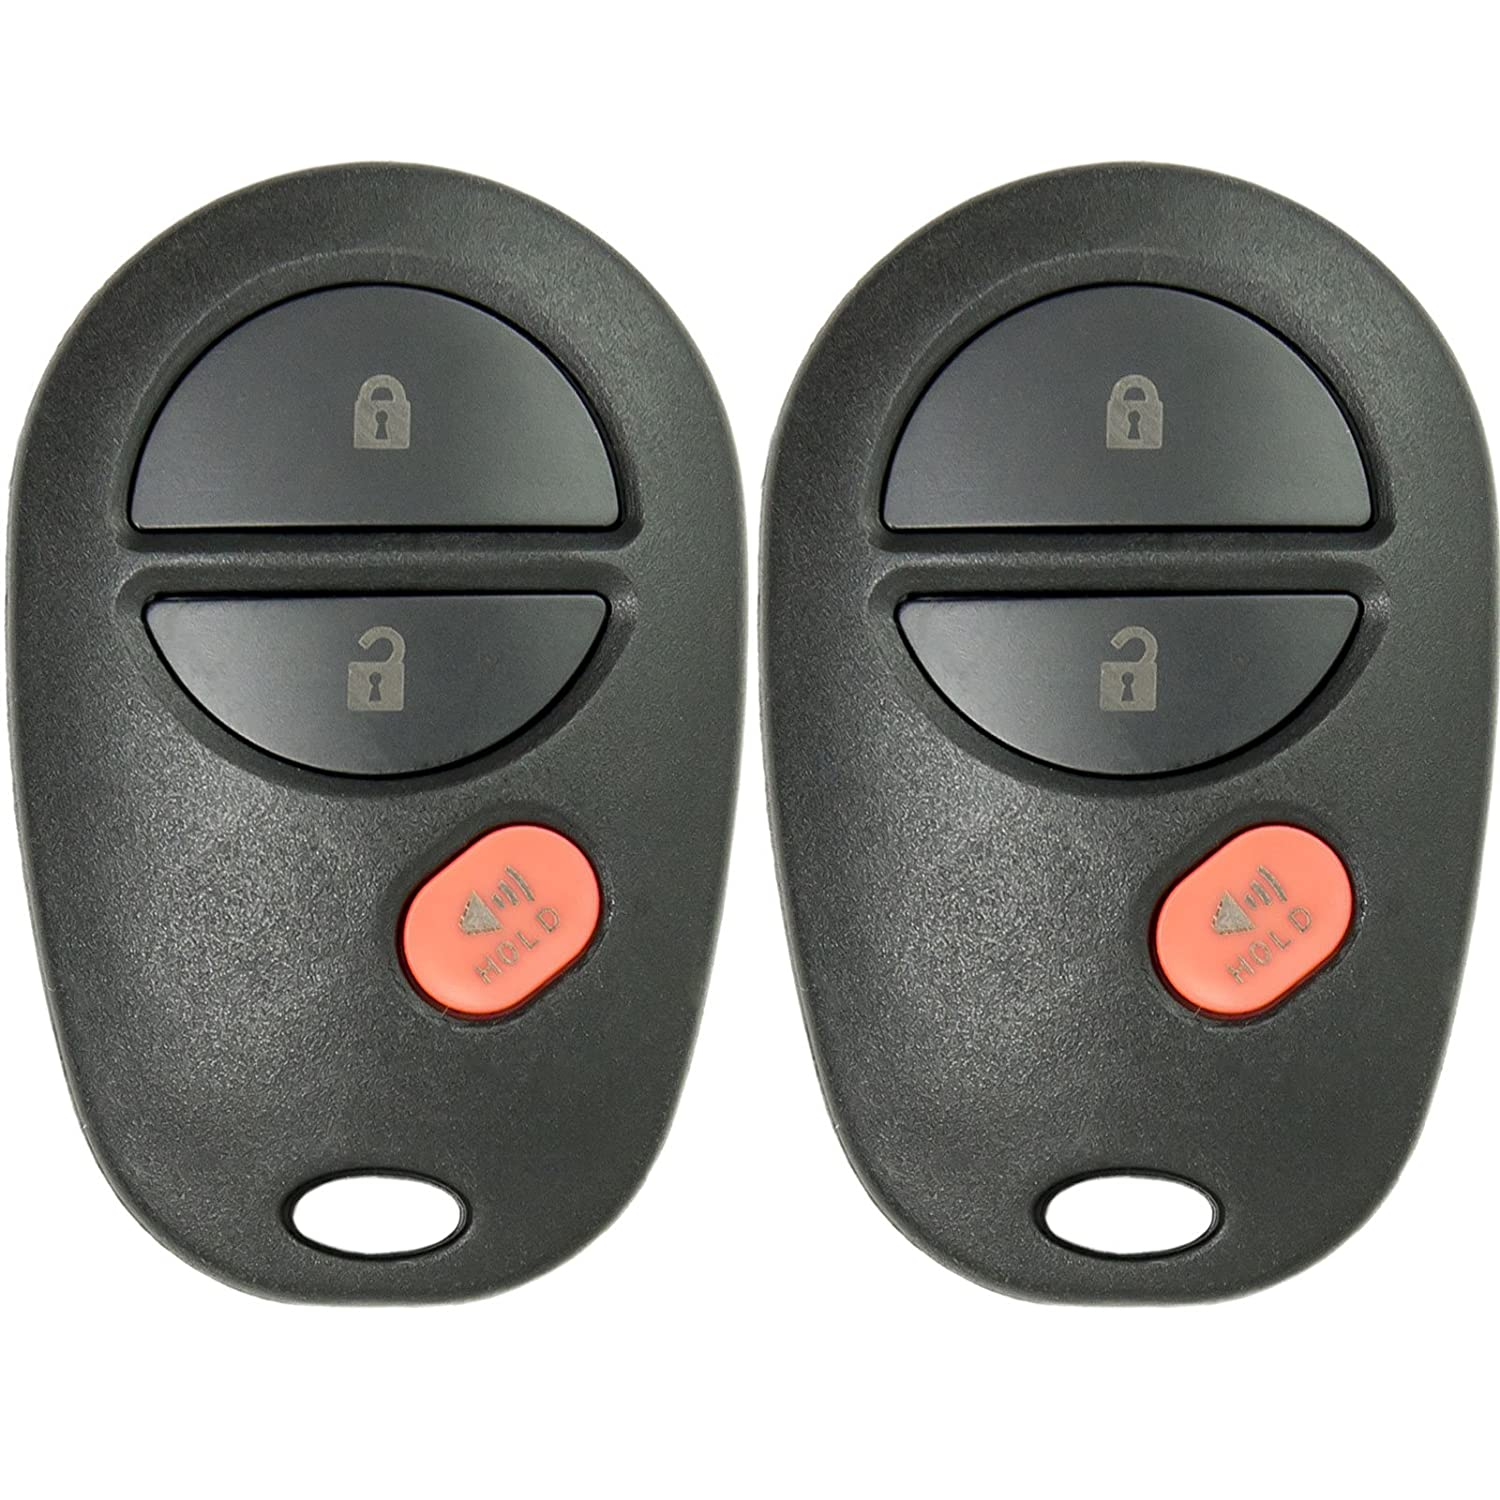 Keyless2Go New Keyless Entry Remote Car Key Fob 3 Button Replacement for FCC GQ43VT20T 2 Pack